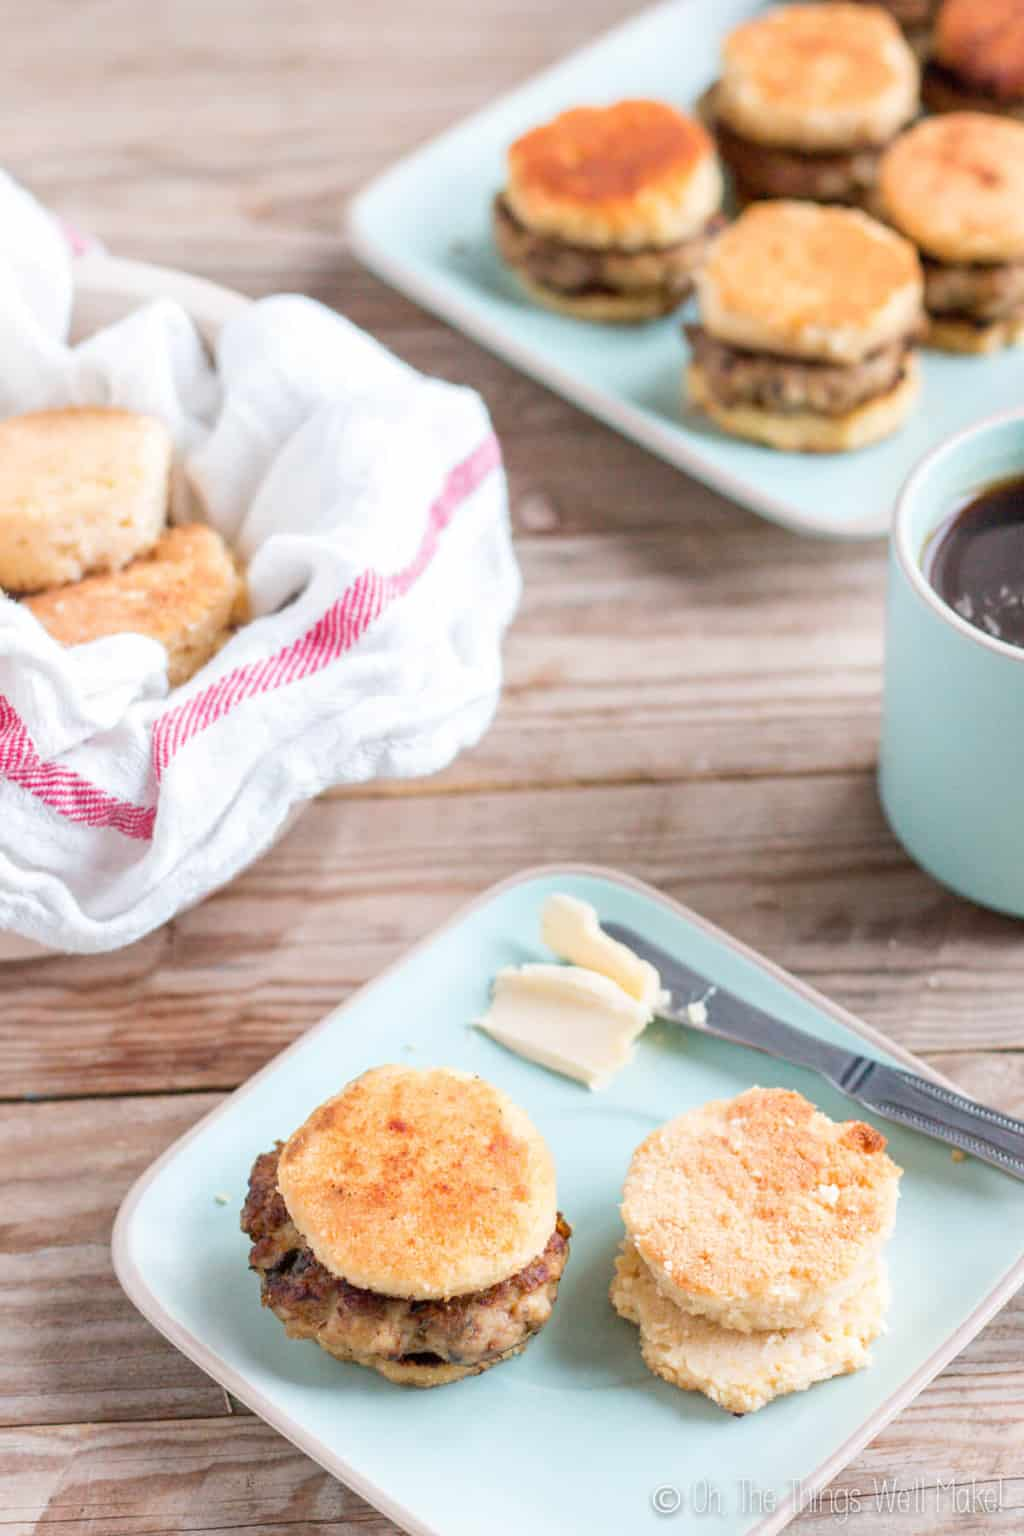 In the foreground, is a light blue square plate with one sausage biscuit and a couple of biscuit pieces next to a knife with butter. On the background is a bowl of biscuits and another plate of sausage biscuits.